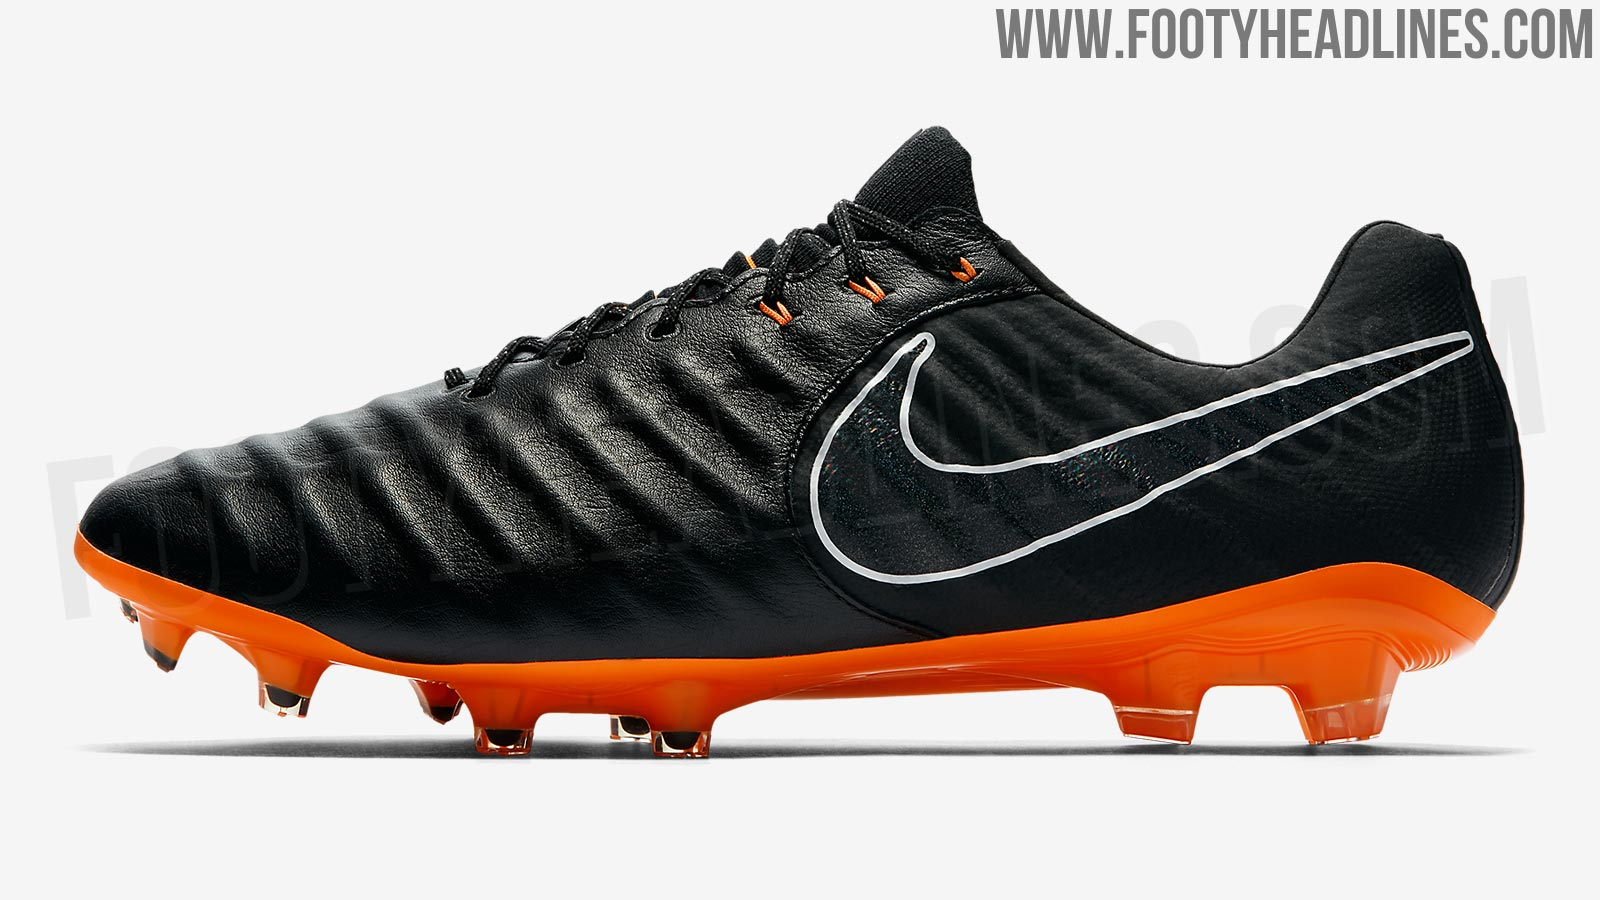 schwarz orange nike tiempo legend vii elite 2018 fu ballschuhe geleakt nur fussball. Black Bedroom Furniture Sets. Home Design Ideas